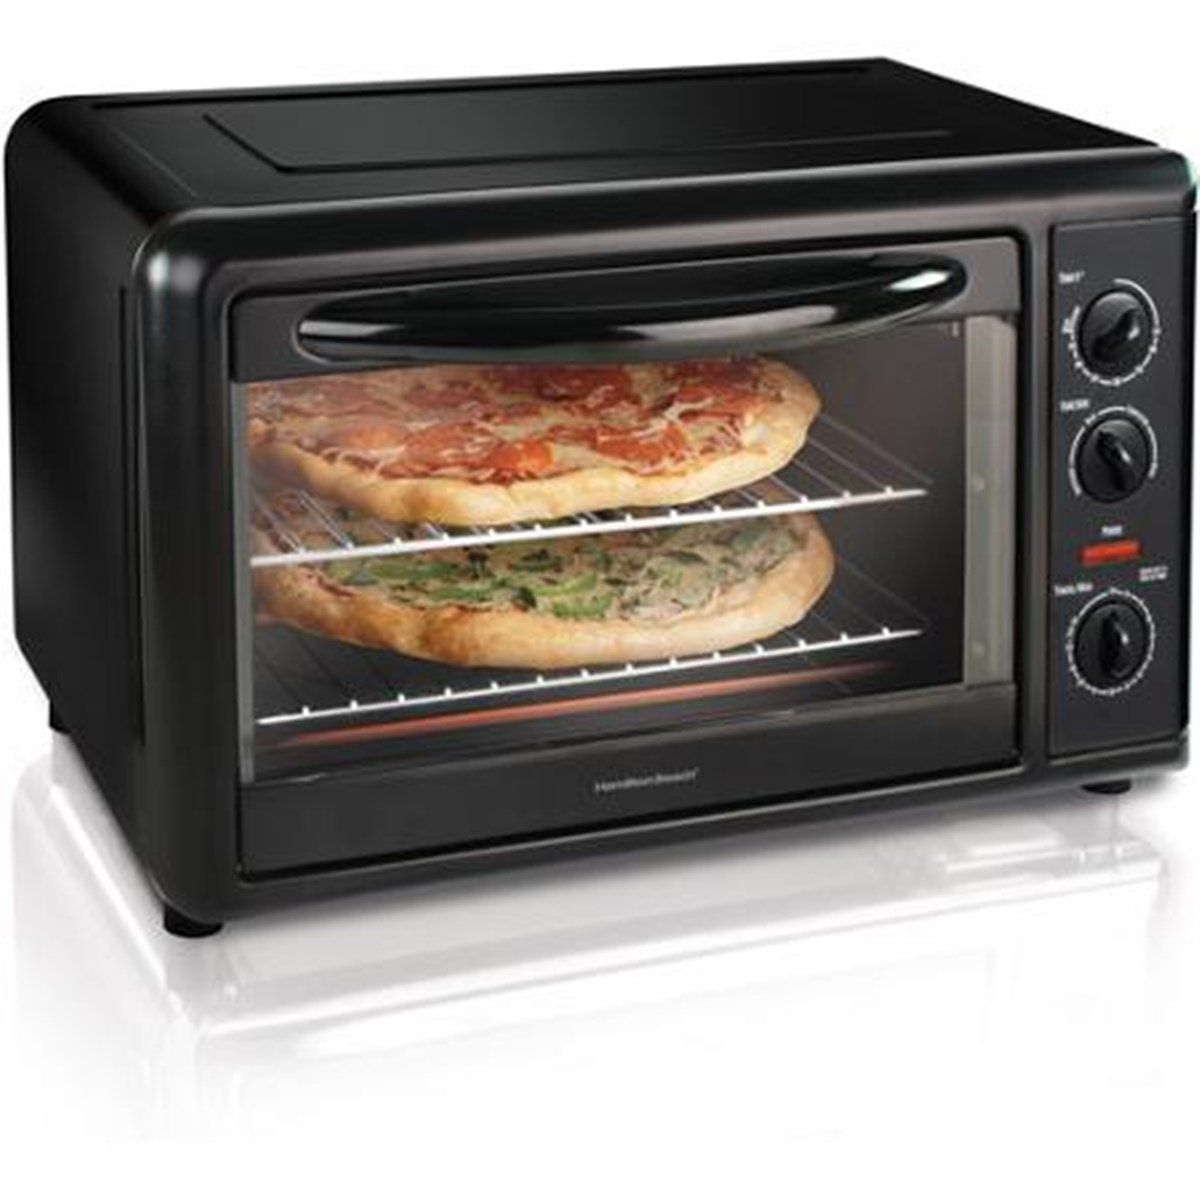 Hamilton Beach Counter Top Oven With Convection Rotisserie Extra